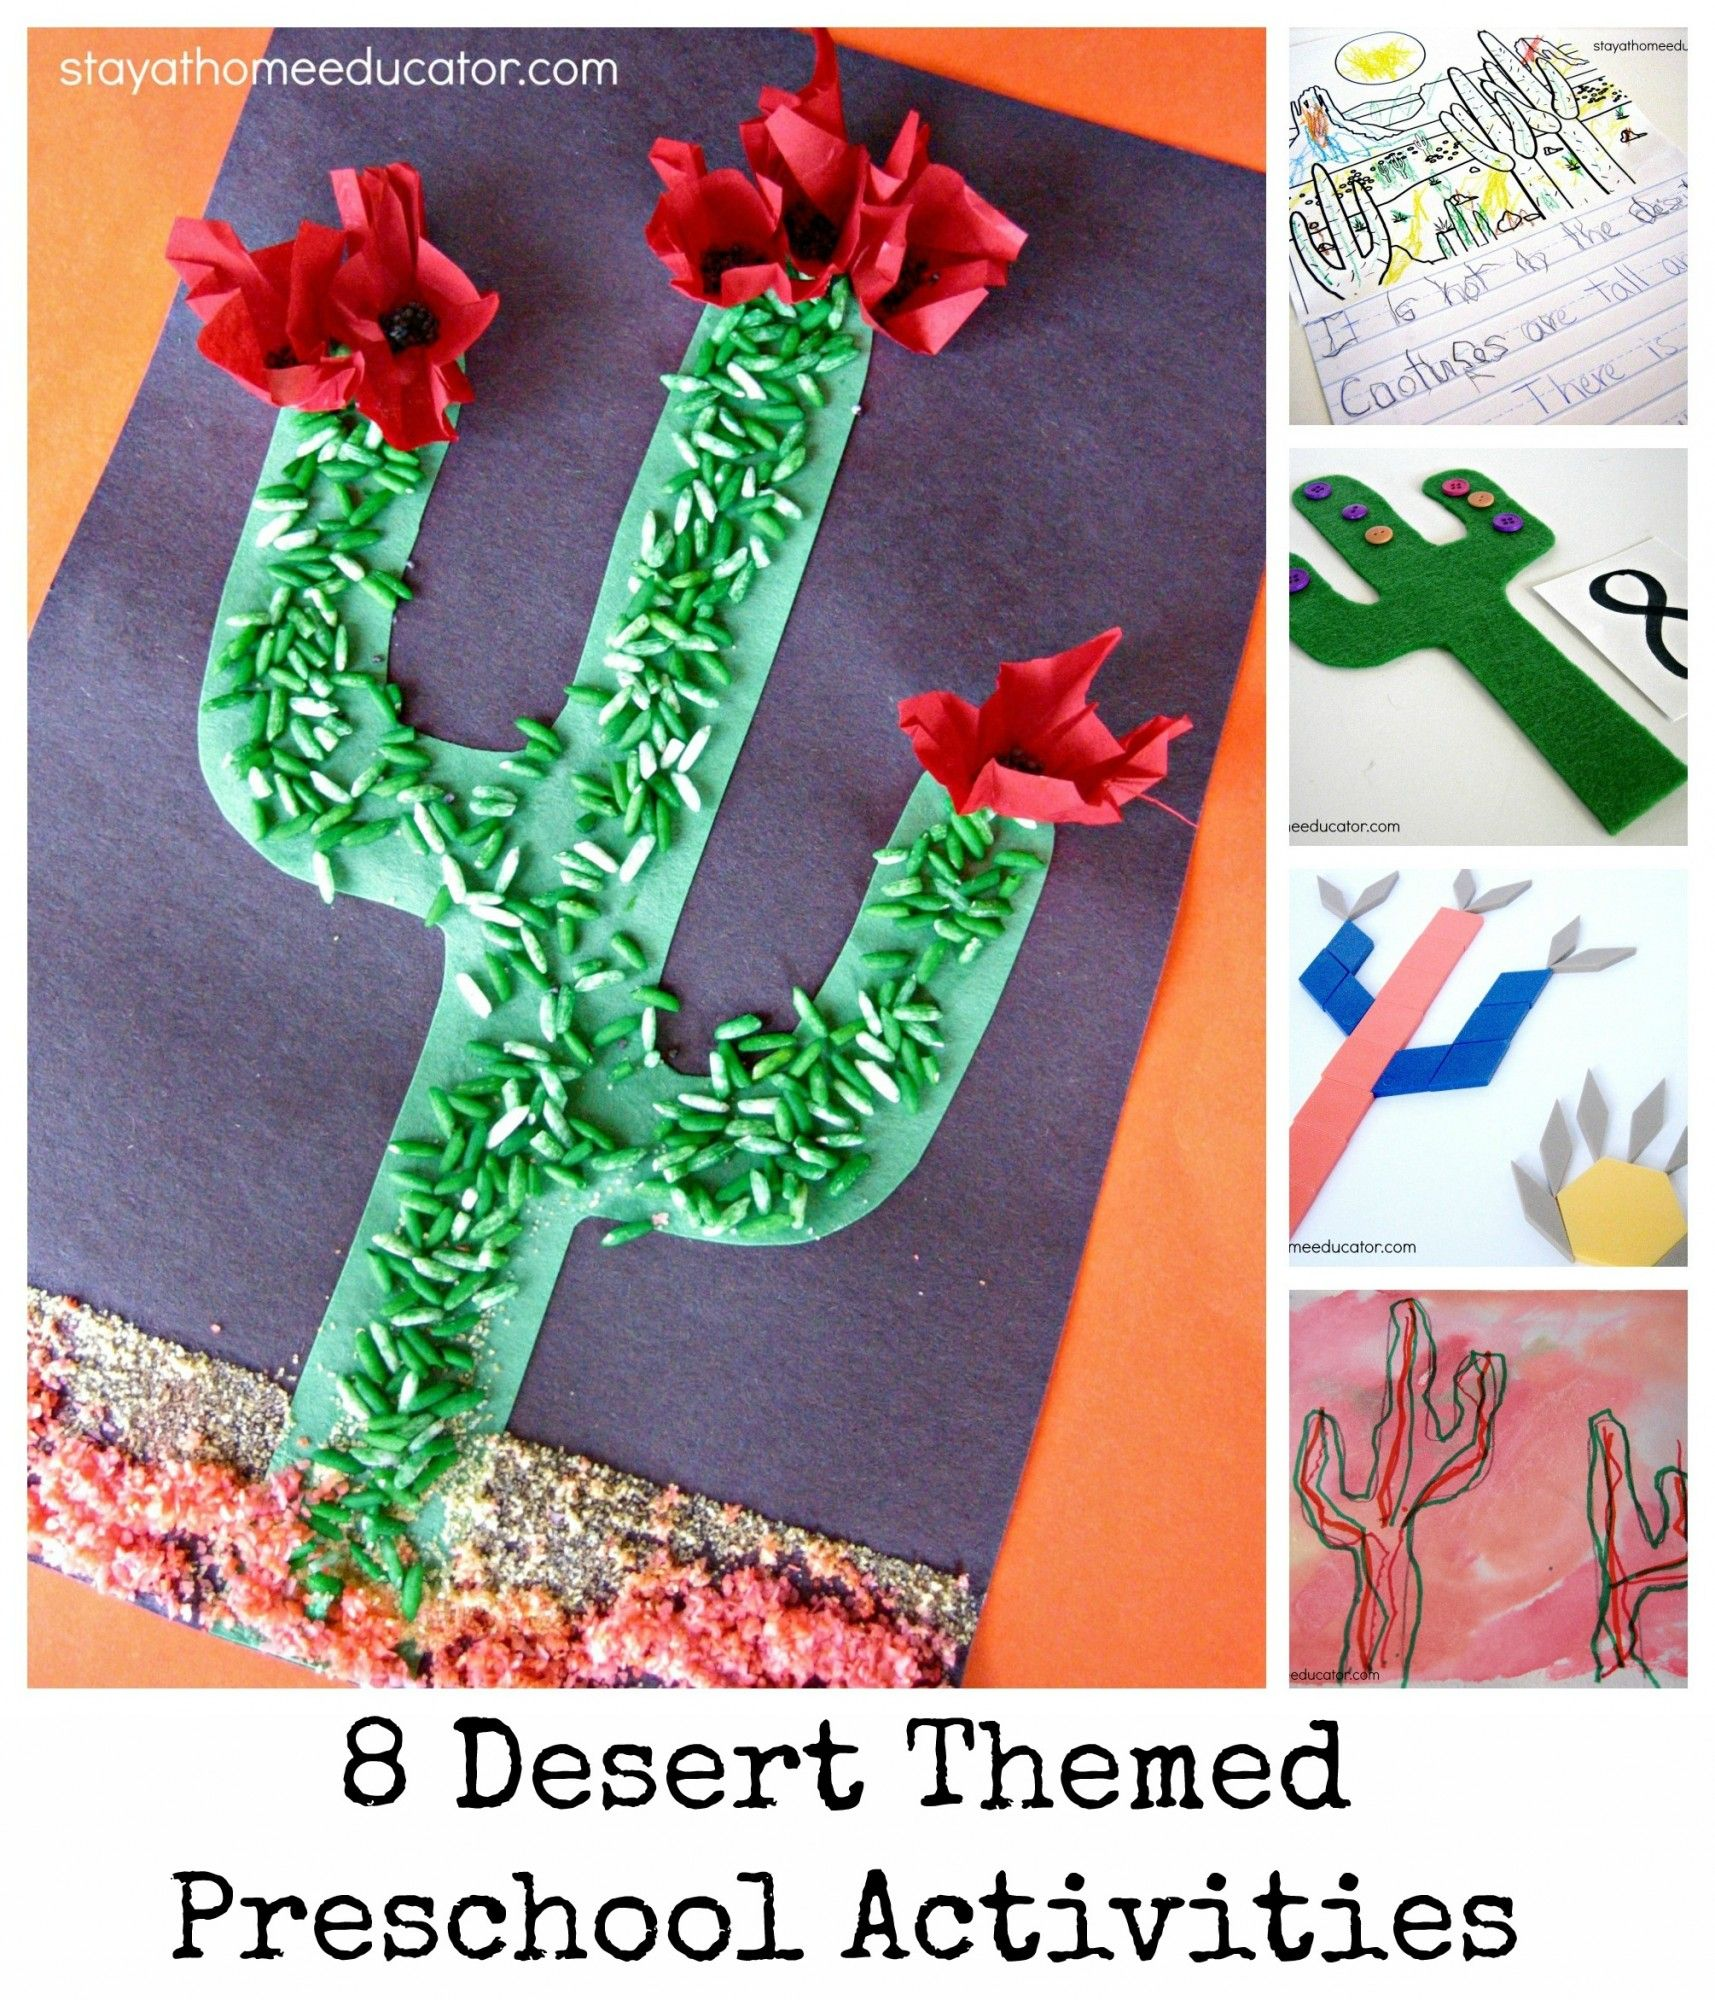 Eight Desert Theme Preschool Activities | Deserts, Preschool themes ...